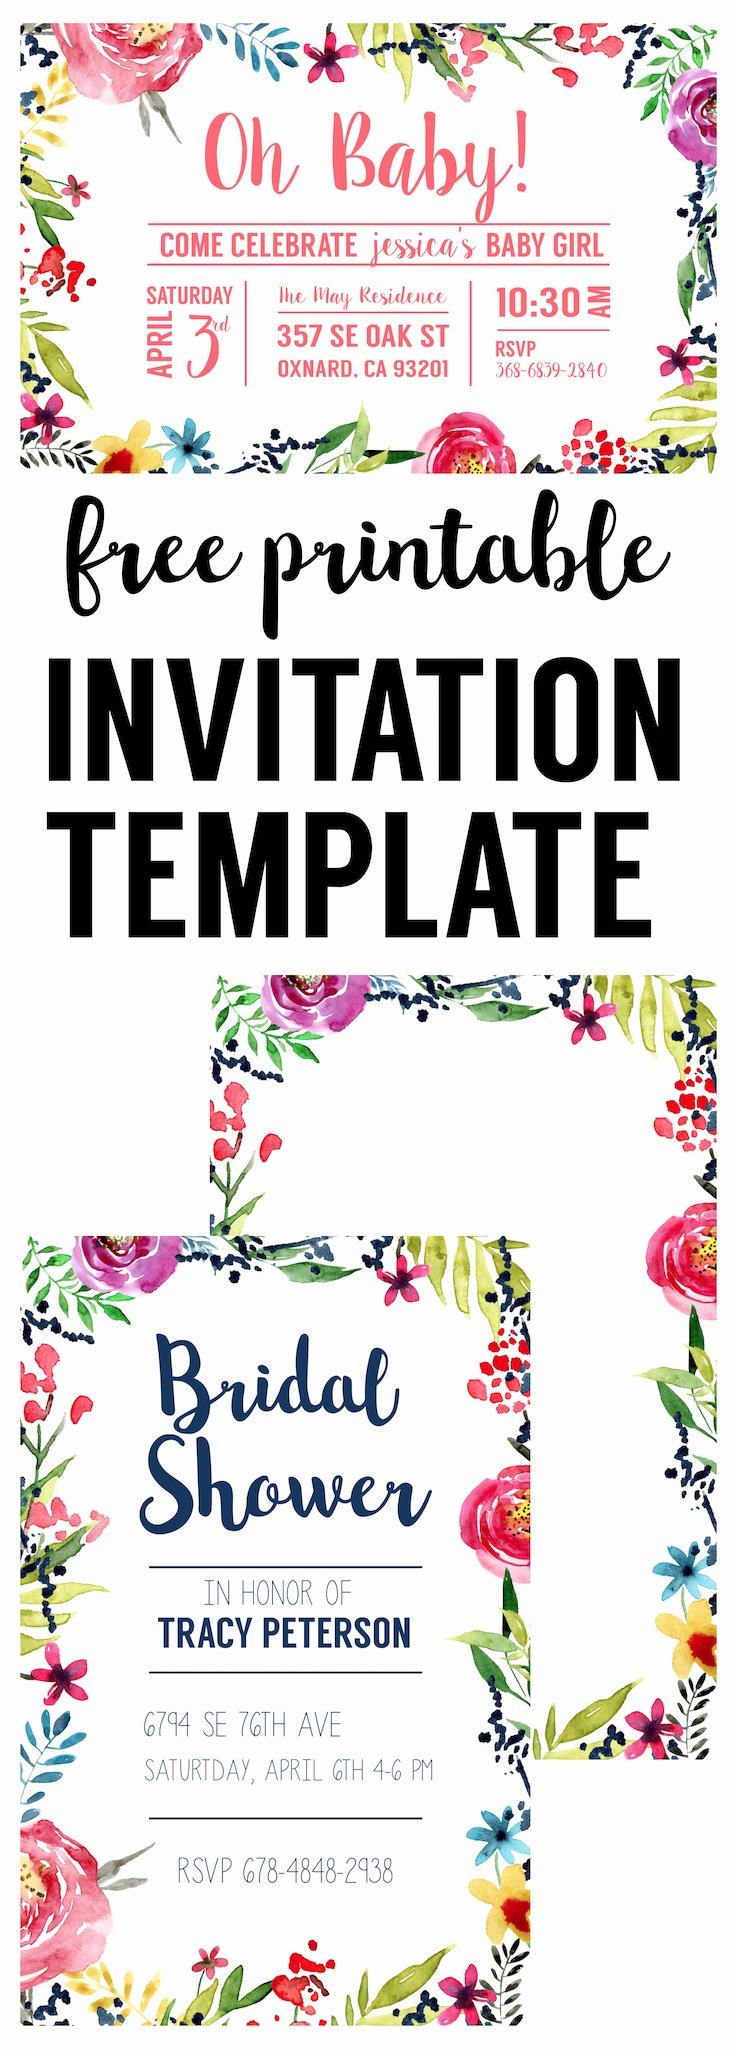 Baby Shower Invitation Free Template Awesome Floral Borders Invitations Free Printable Invitation